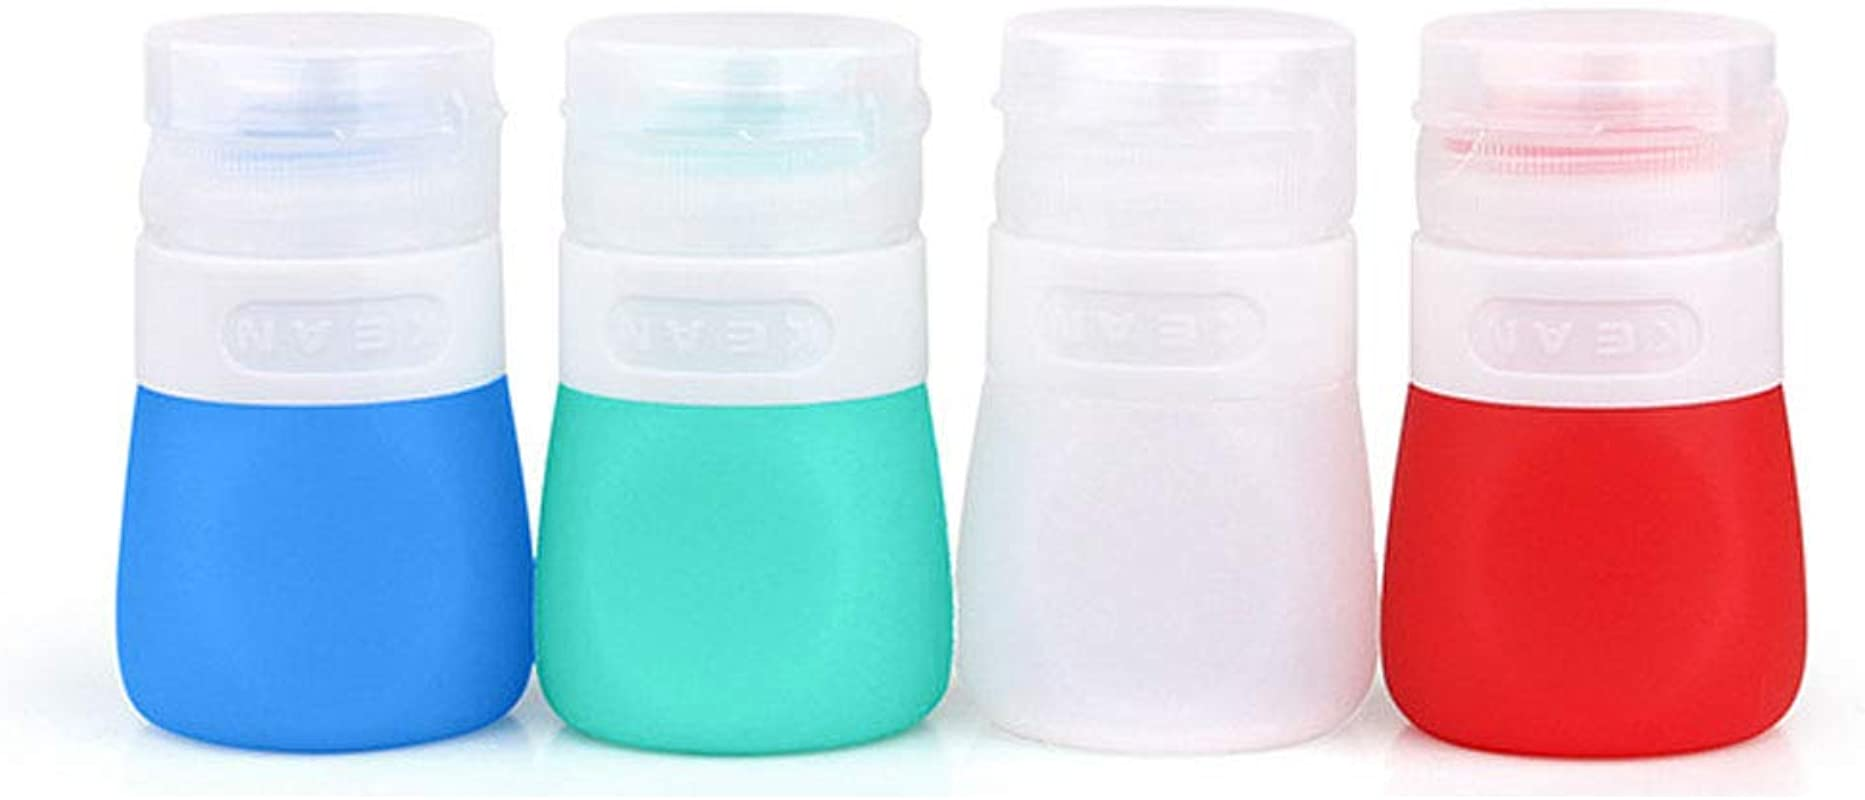 YINGGG Squeeze Portable Salad Dressing Bottles Sauce Leakprook Containers To Go Condiment Storage Bottle Set Of 4 37ML